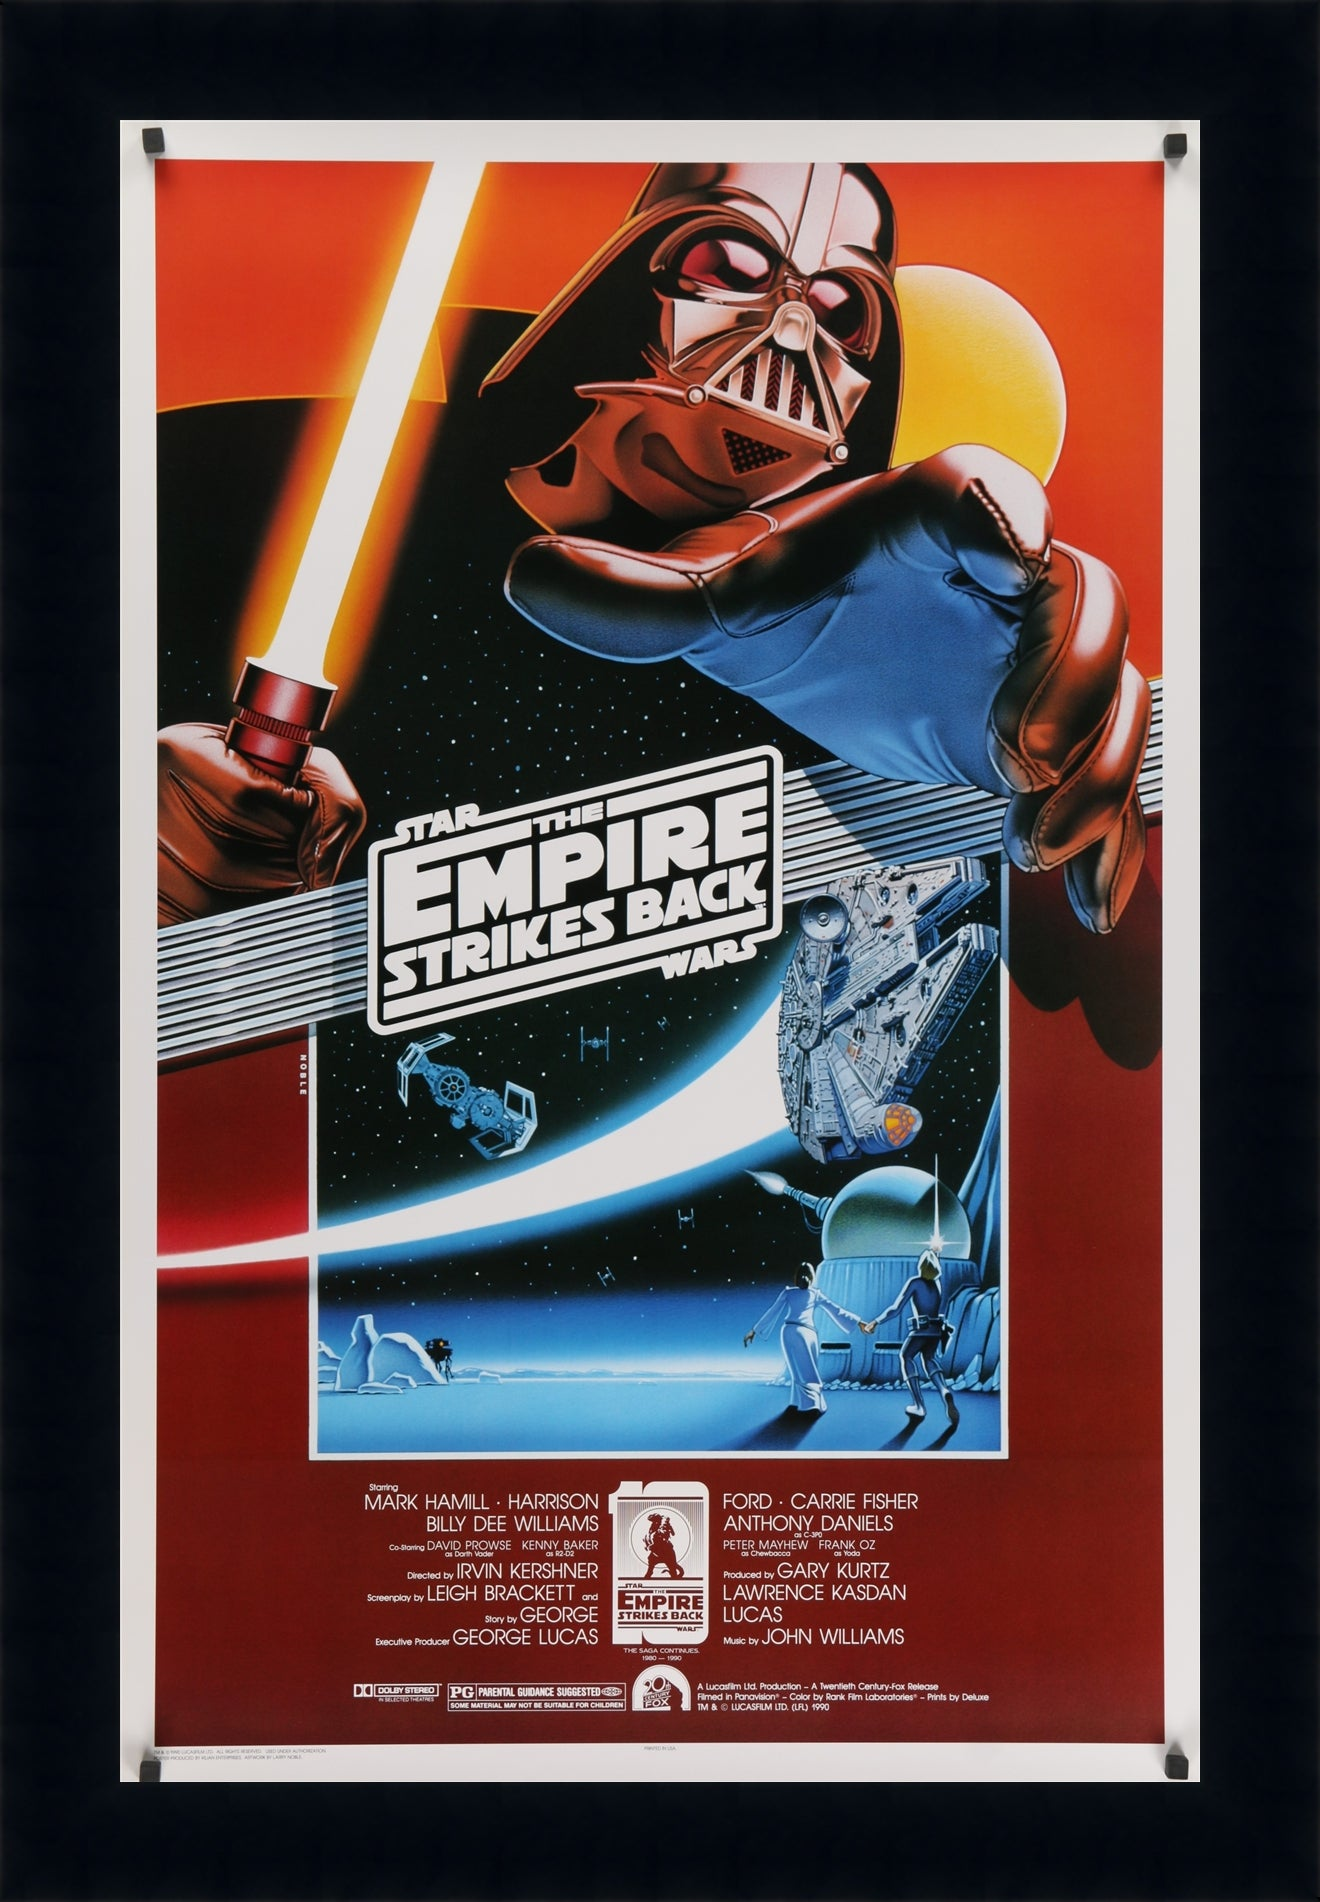 A one sheet movie poster by Kilian Enterprises for Star Wars - The Empire Strikes Back